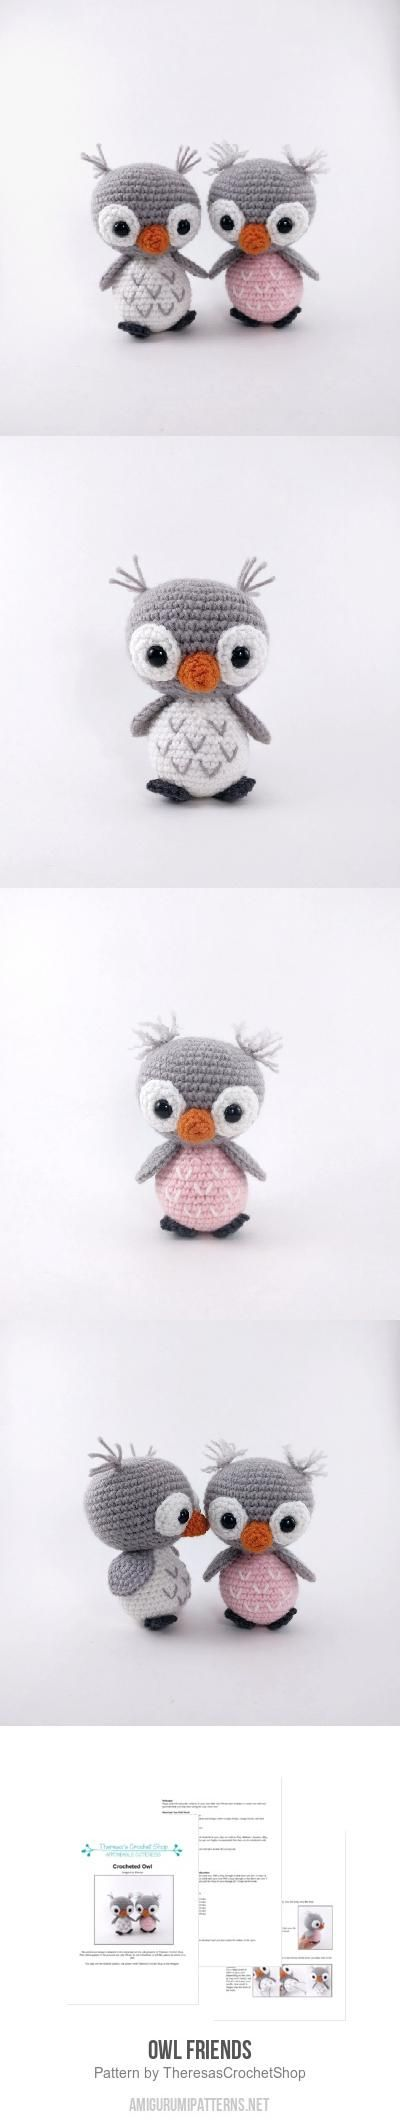 Owl Friends amigurumi pattern